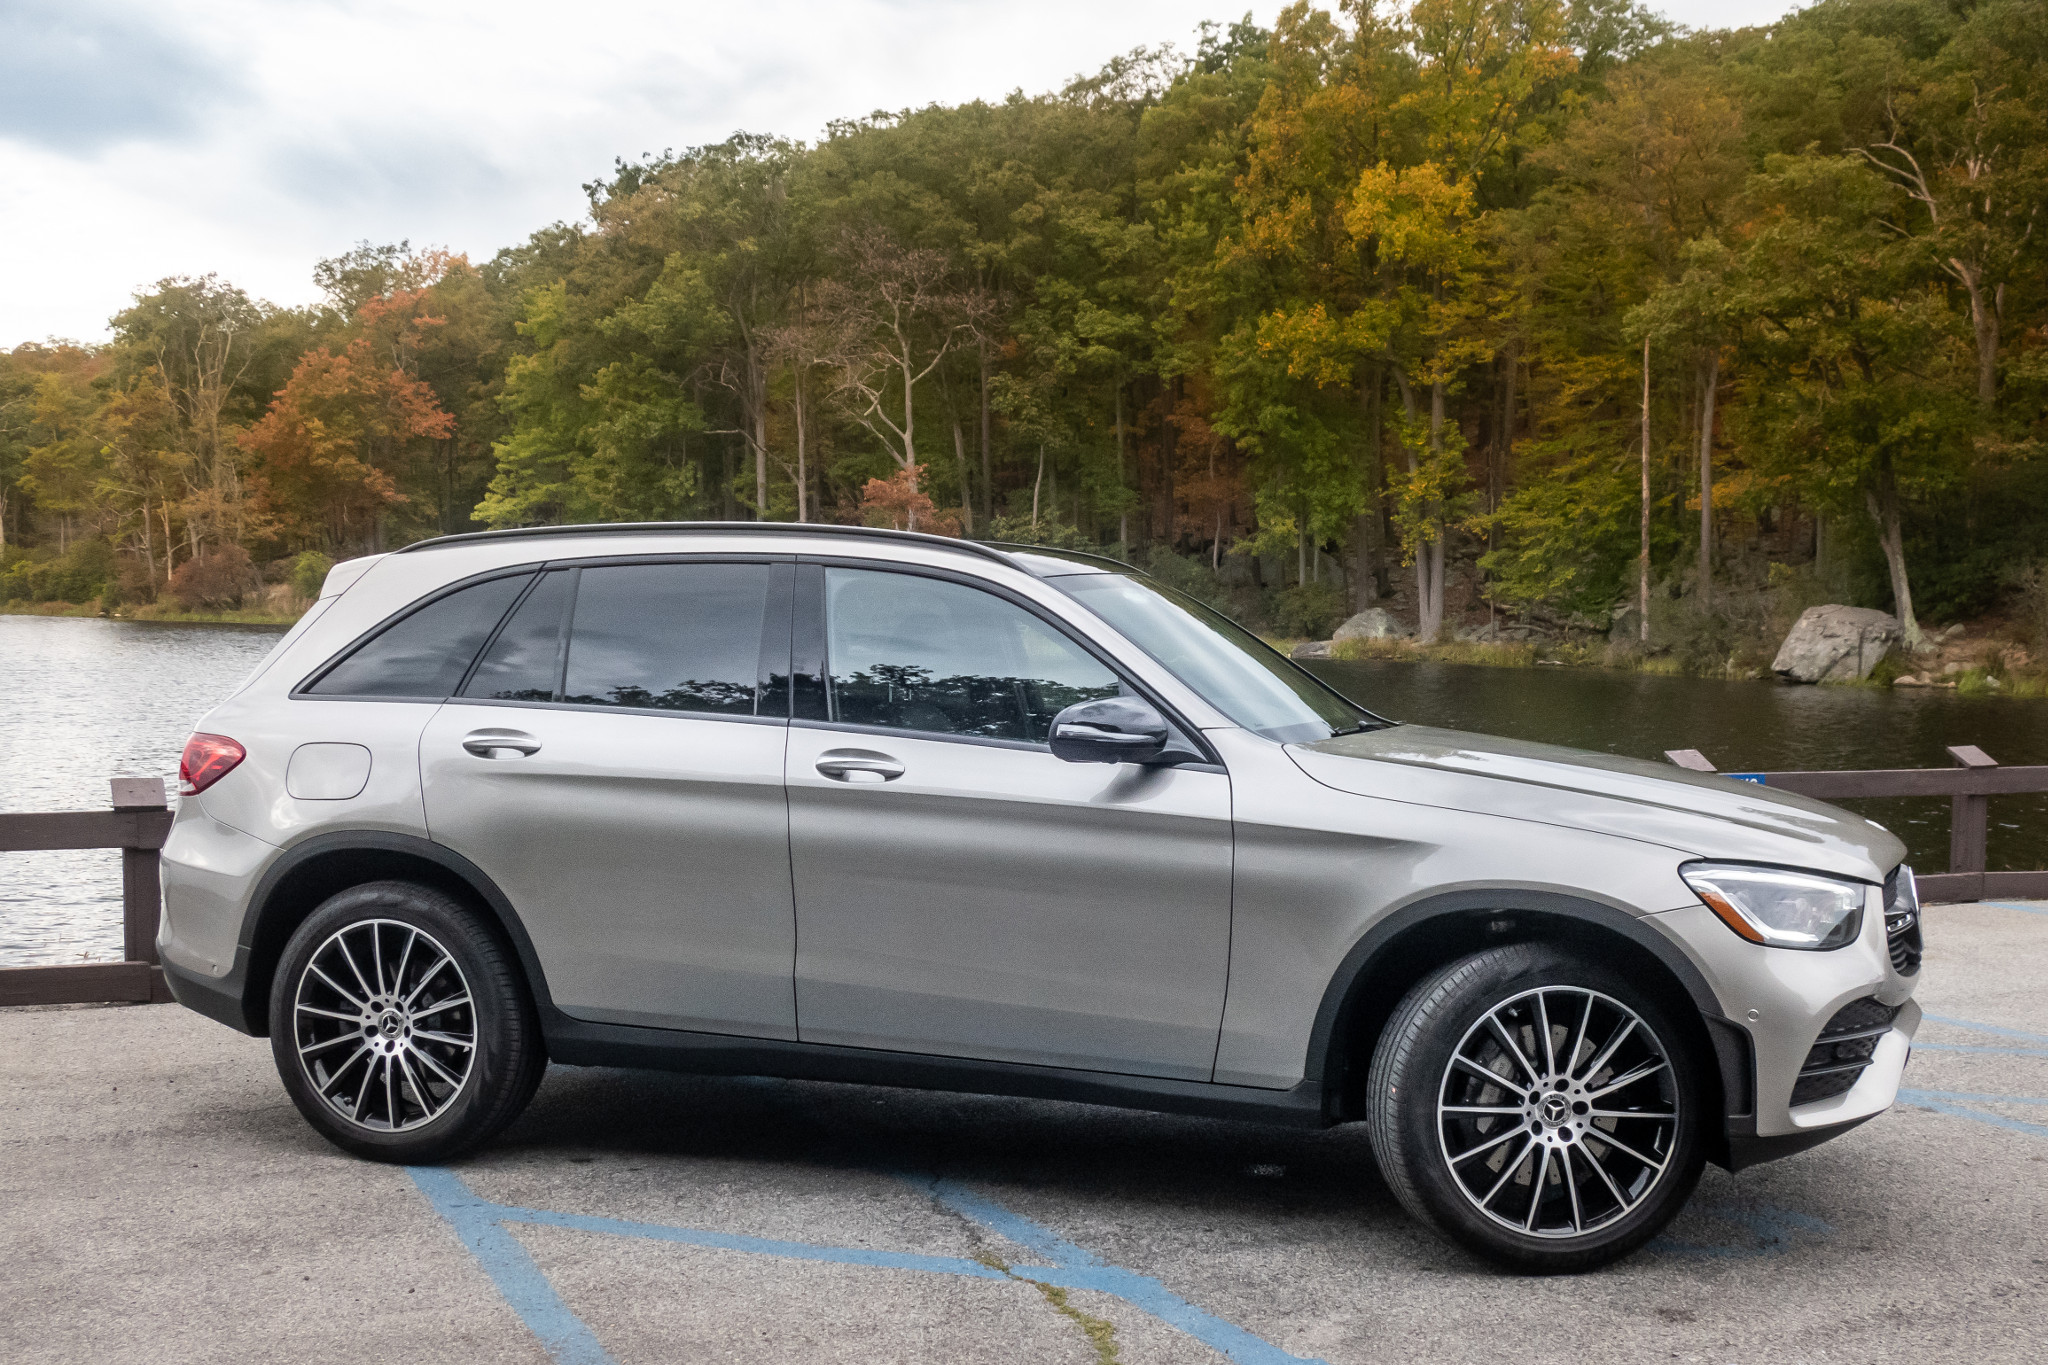 2020 Mercedes-Benz GLC300, AMG GLC63: 7 Things We Like (and 5 Not So Much)